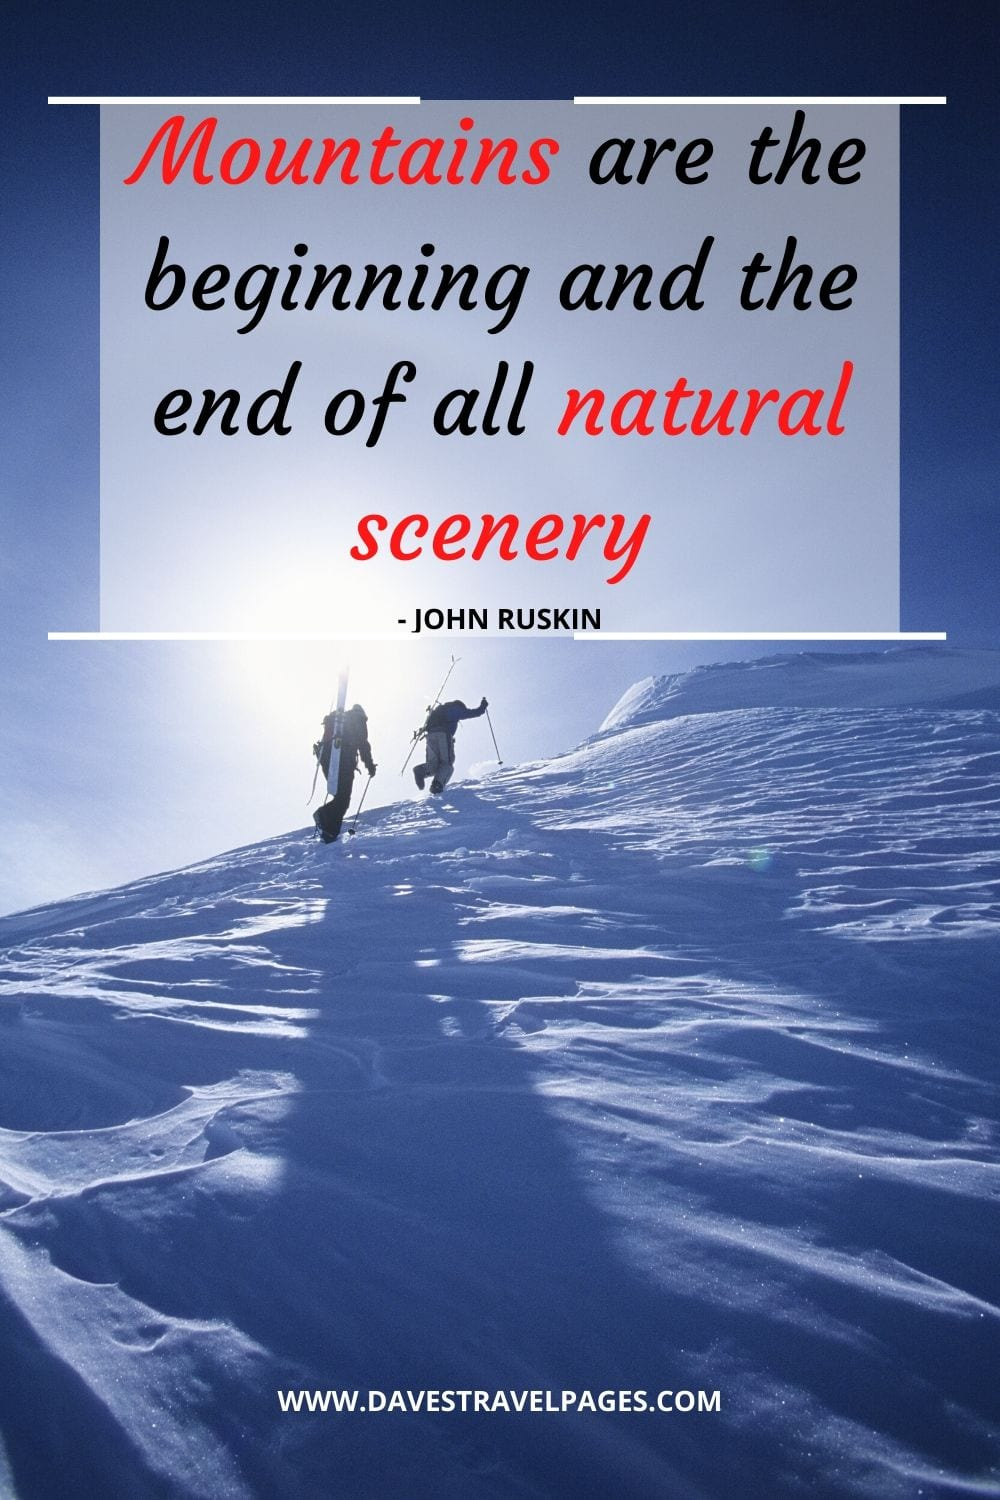 Mountain and Nature Quotes: Mountains are the beginning and the end of all natural scenery - John Ruskin